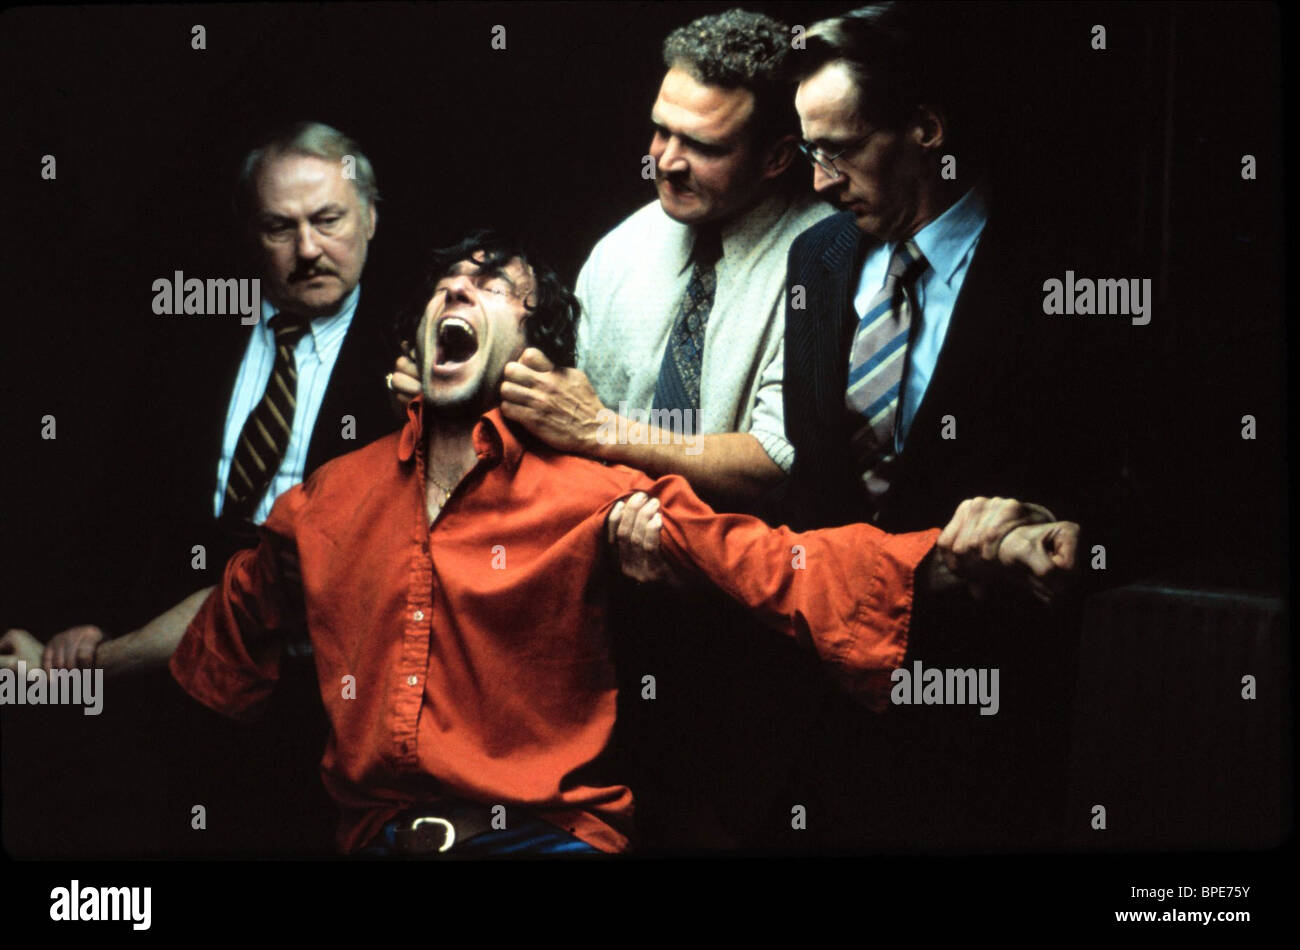 Police Name Stock Photos & Police Name Stock Images - Alamy